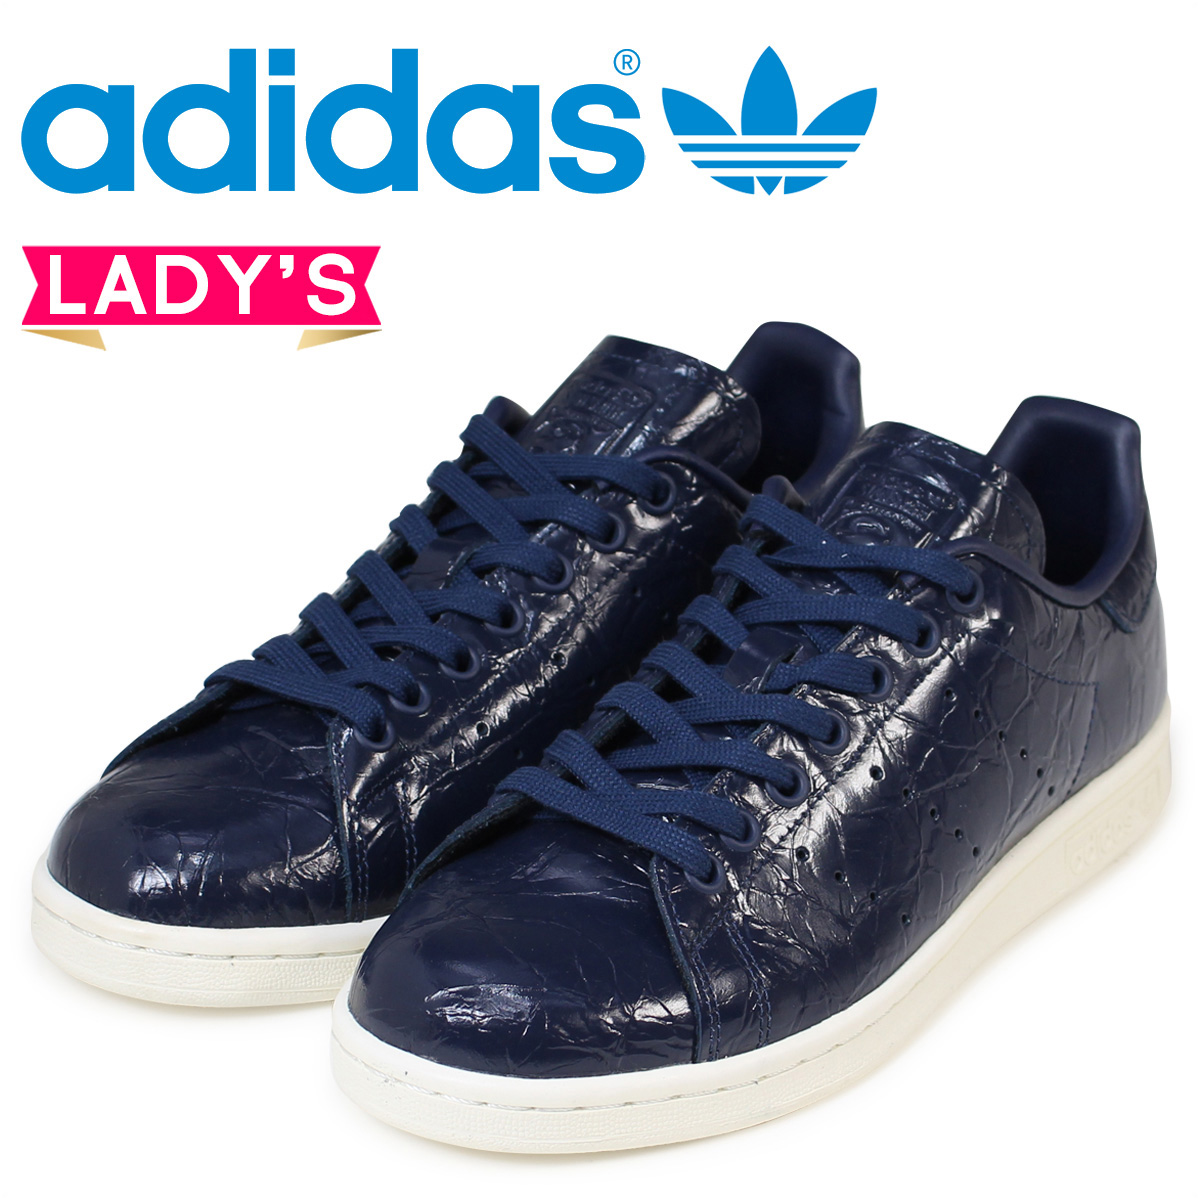 Navy Stan Bb5163 W Originals Shoes Smith Lady's Adidas Sneakers hQdCstrx